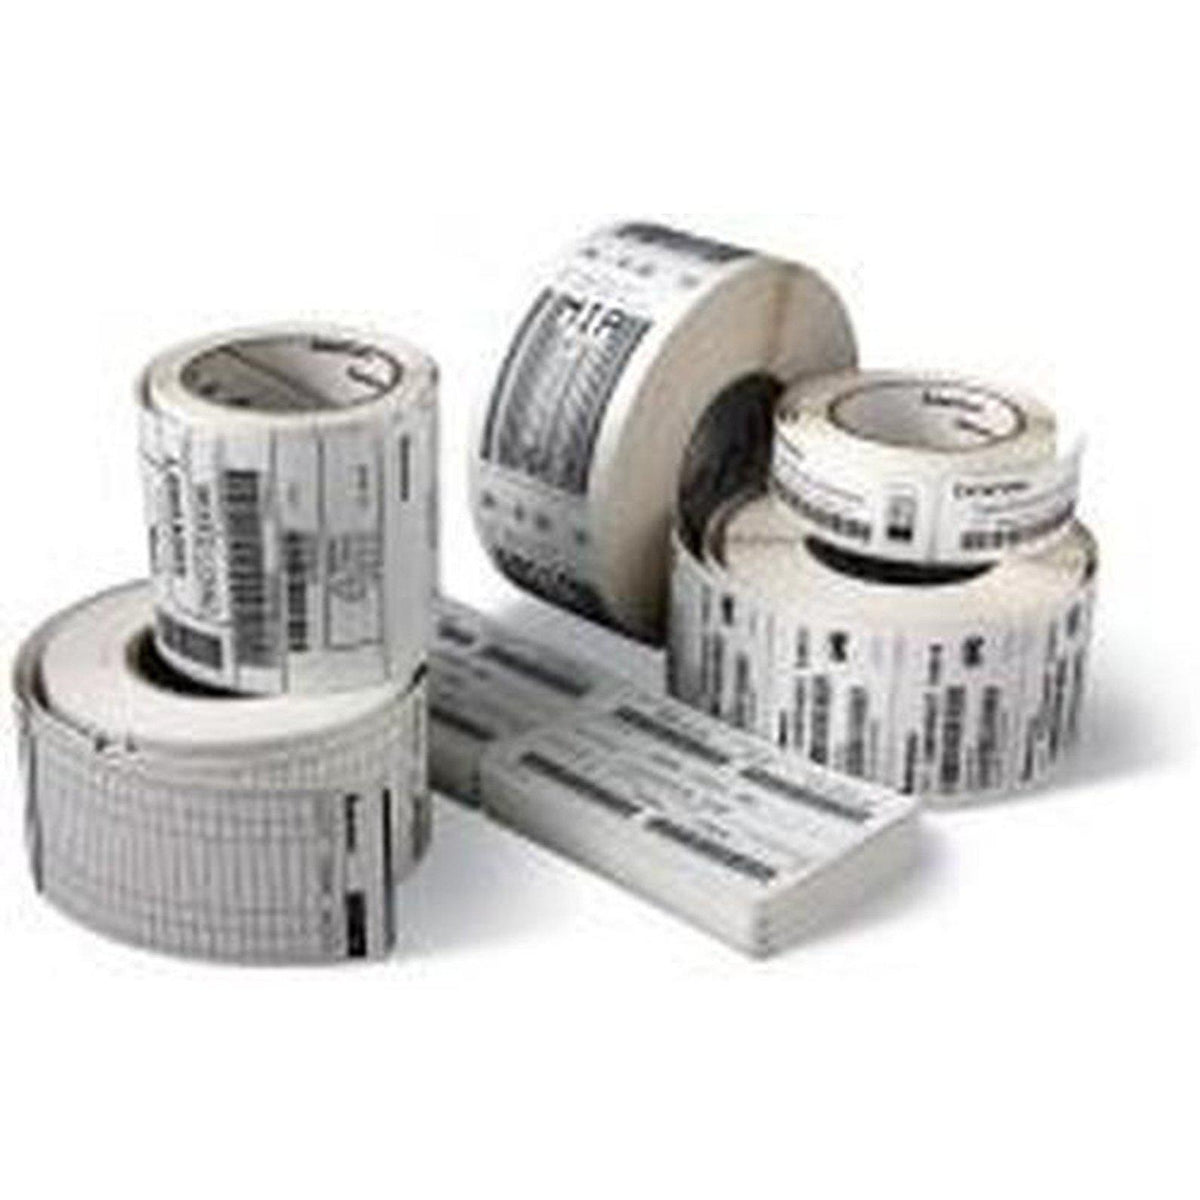 Zebra Z-Select 2000D Direct Thermal Paper Labels 76mm x 25mm, White | 800263-105 Consumable Zebra